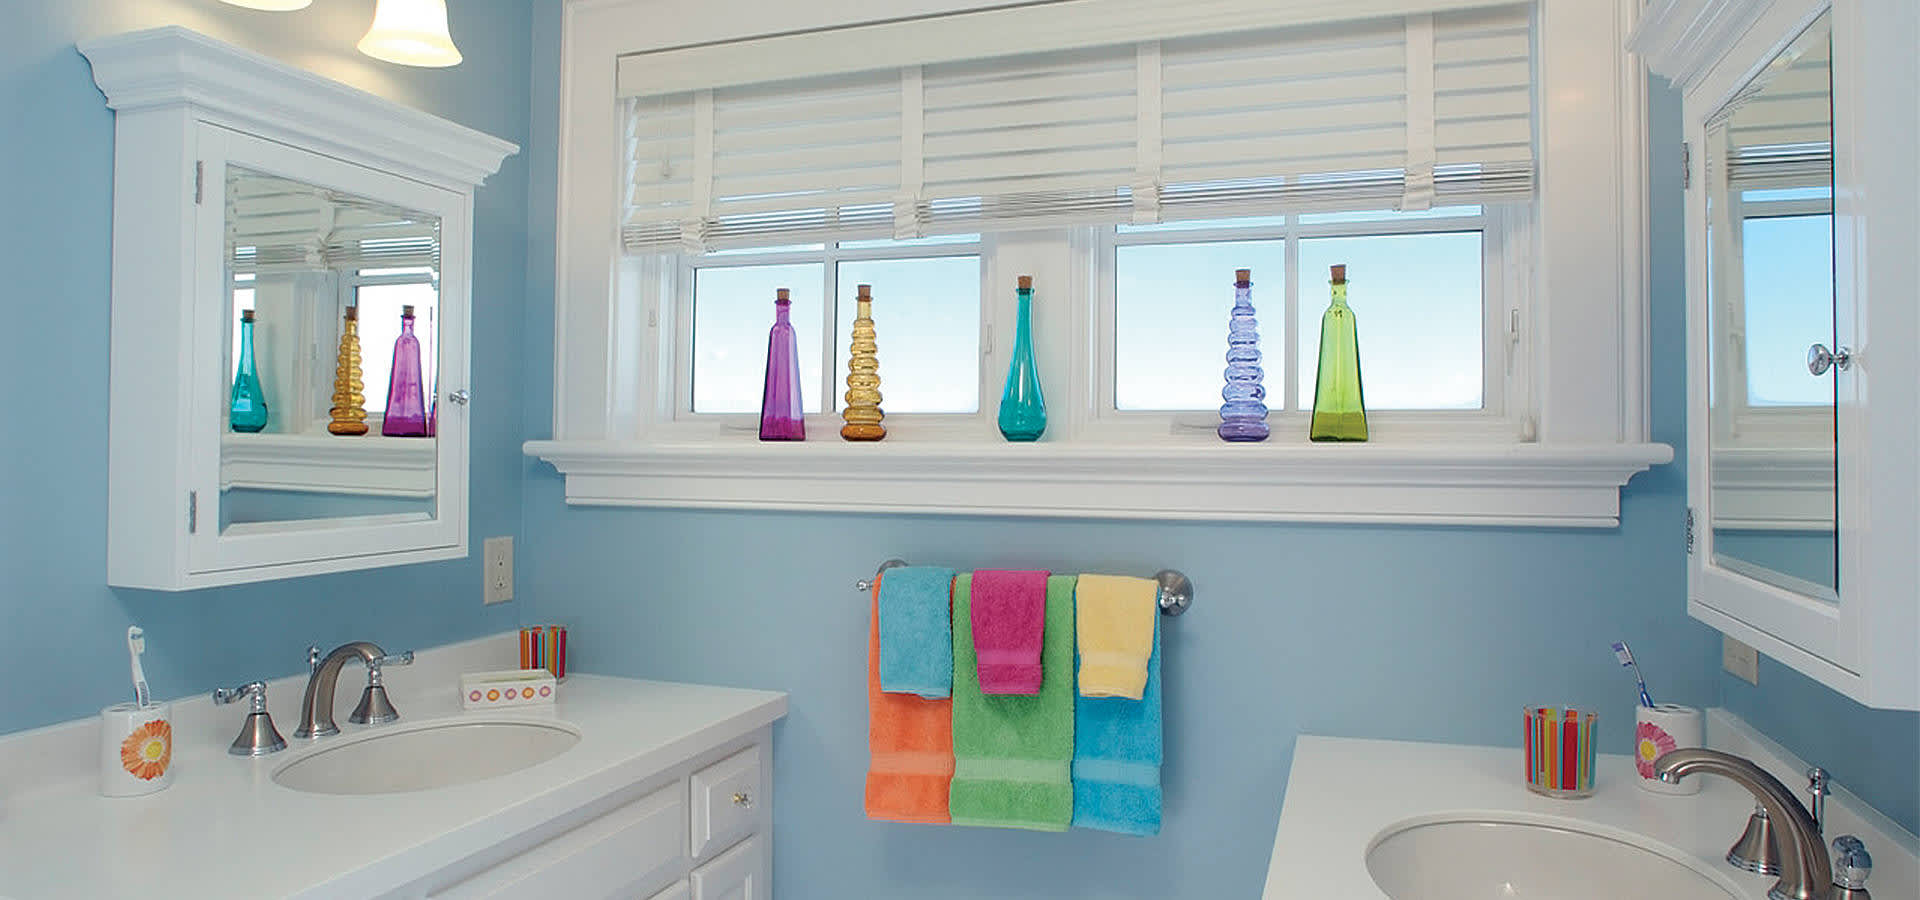 Collection of Great How To Clean Bathroom Fixtures Place that you must See @house2homegoods.net